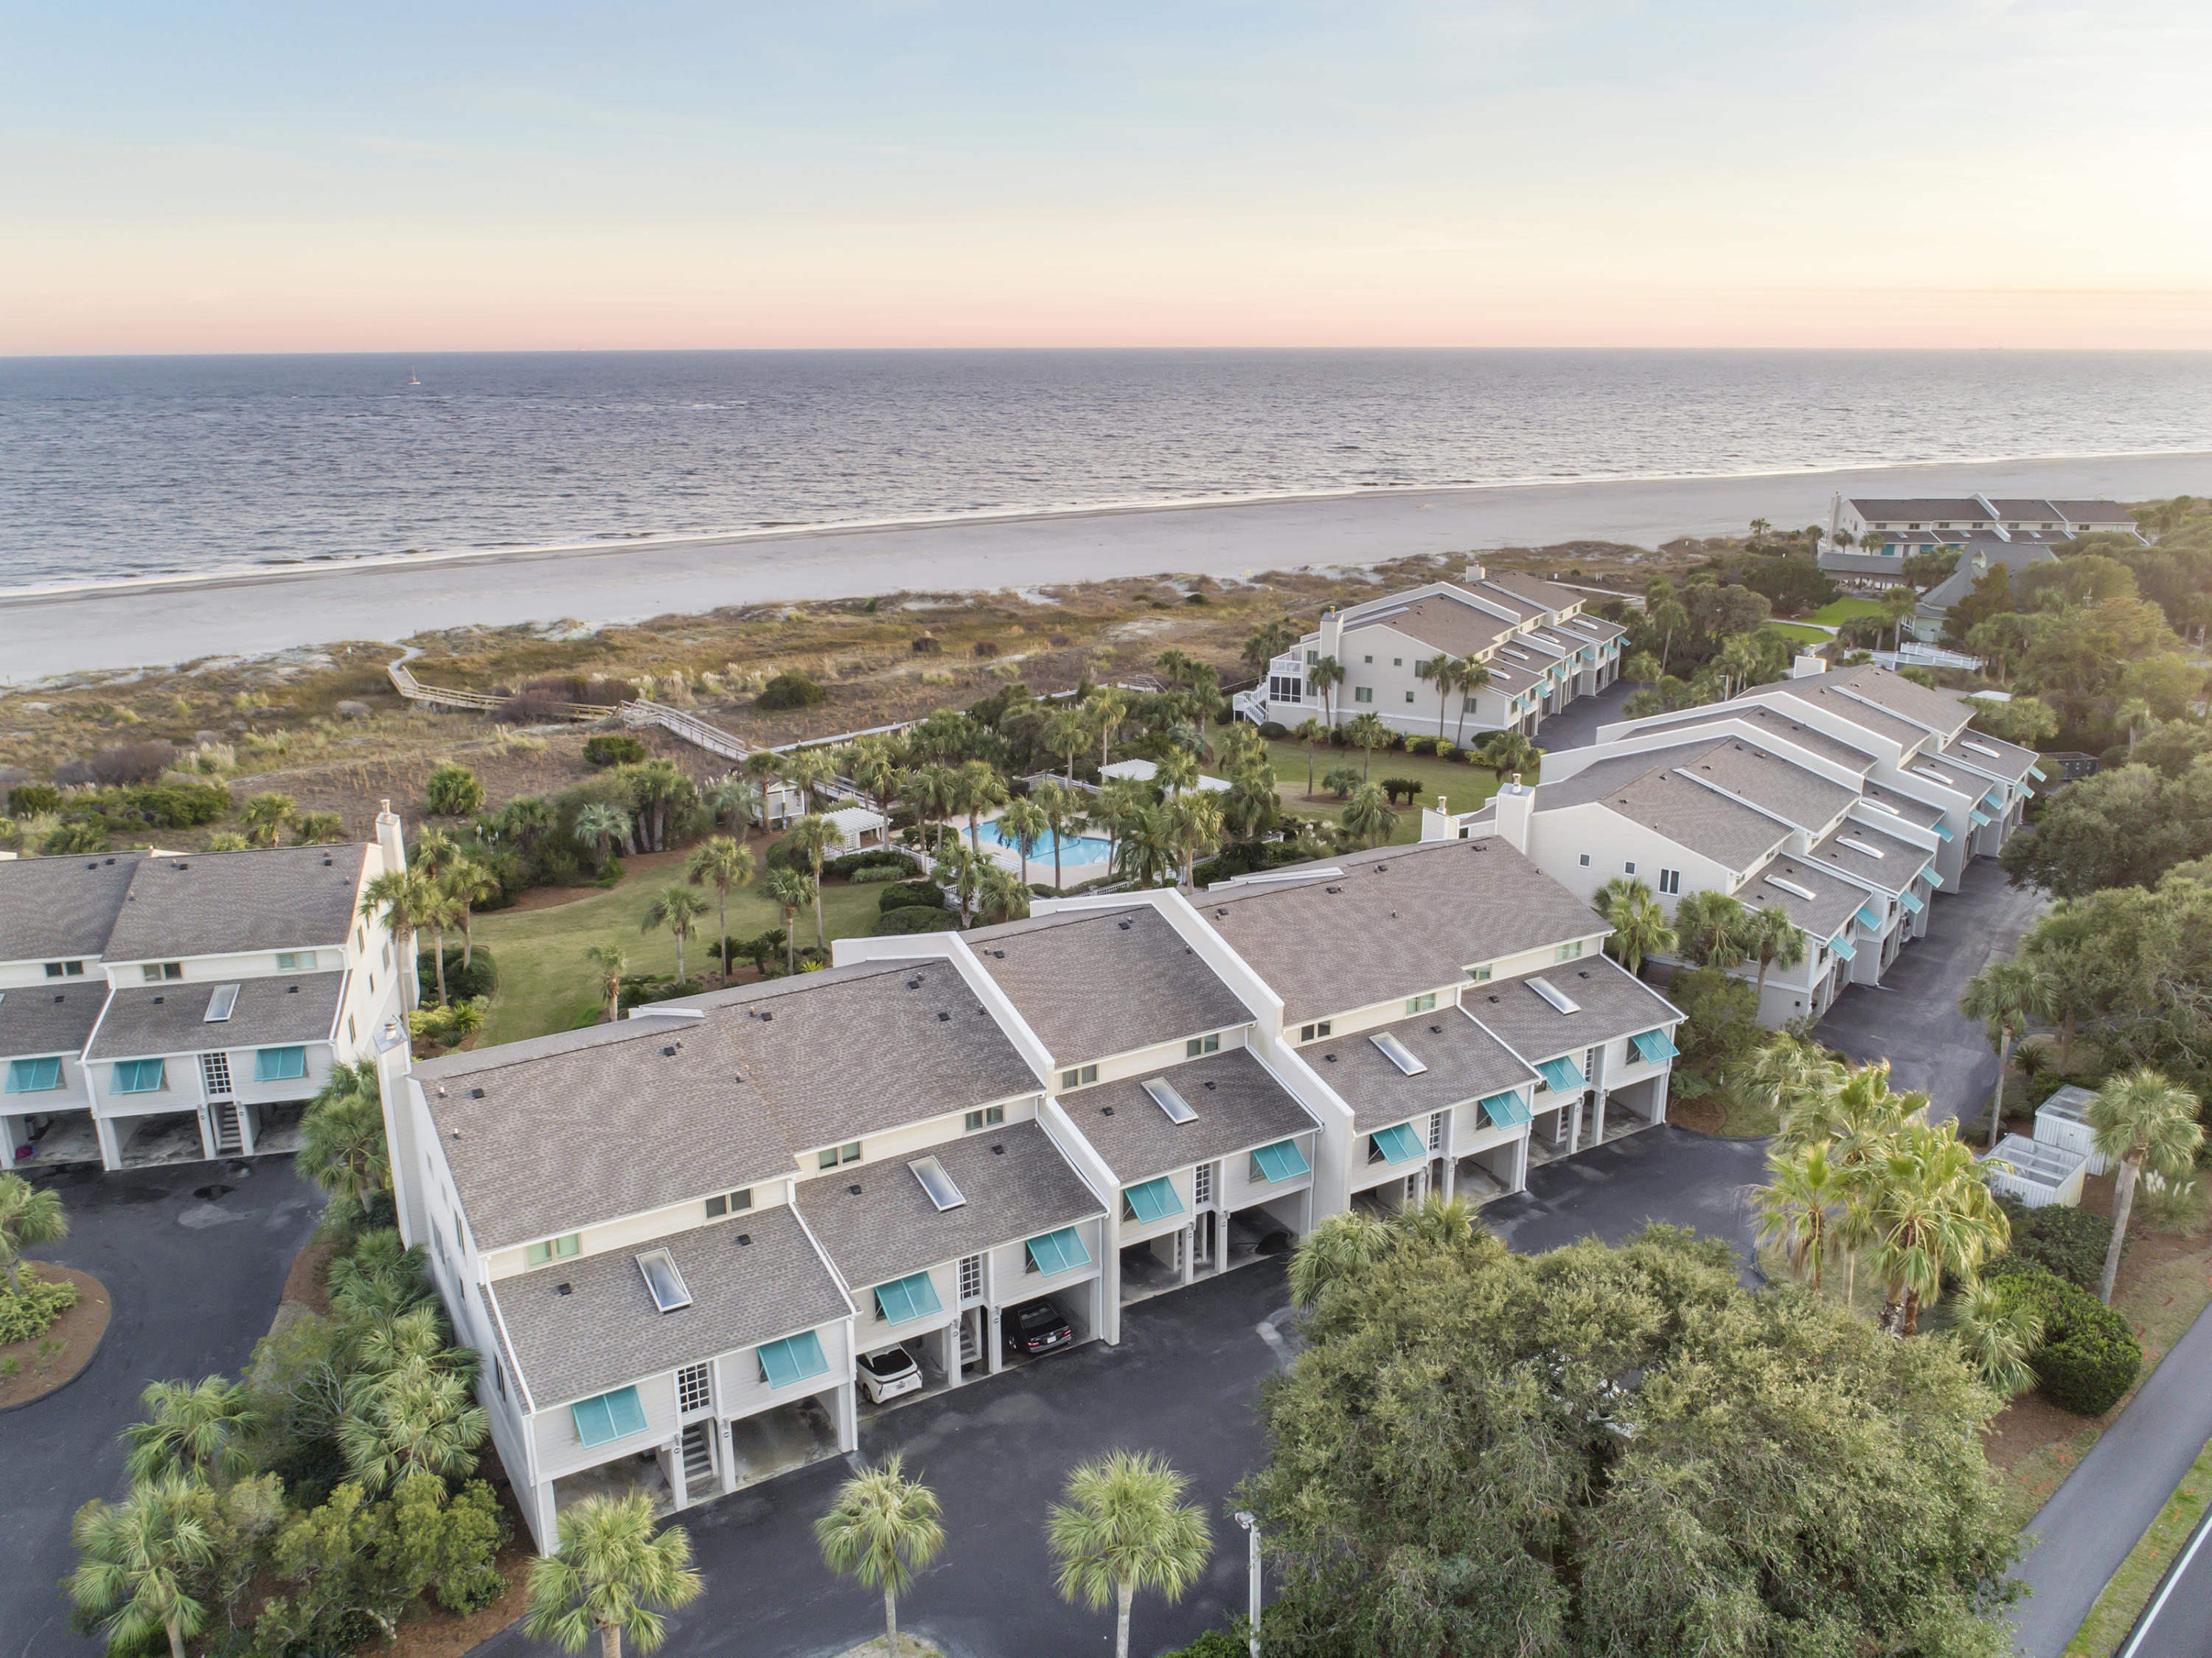 Beach Club Villas Homes For Sale - 51 Beach Club Villas, Isle of Palms, SC - 11